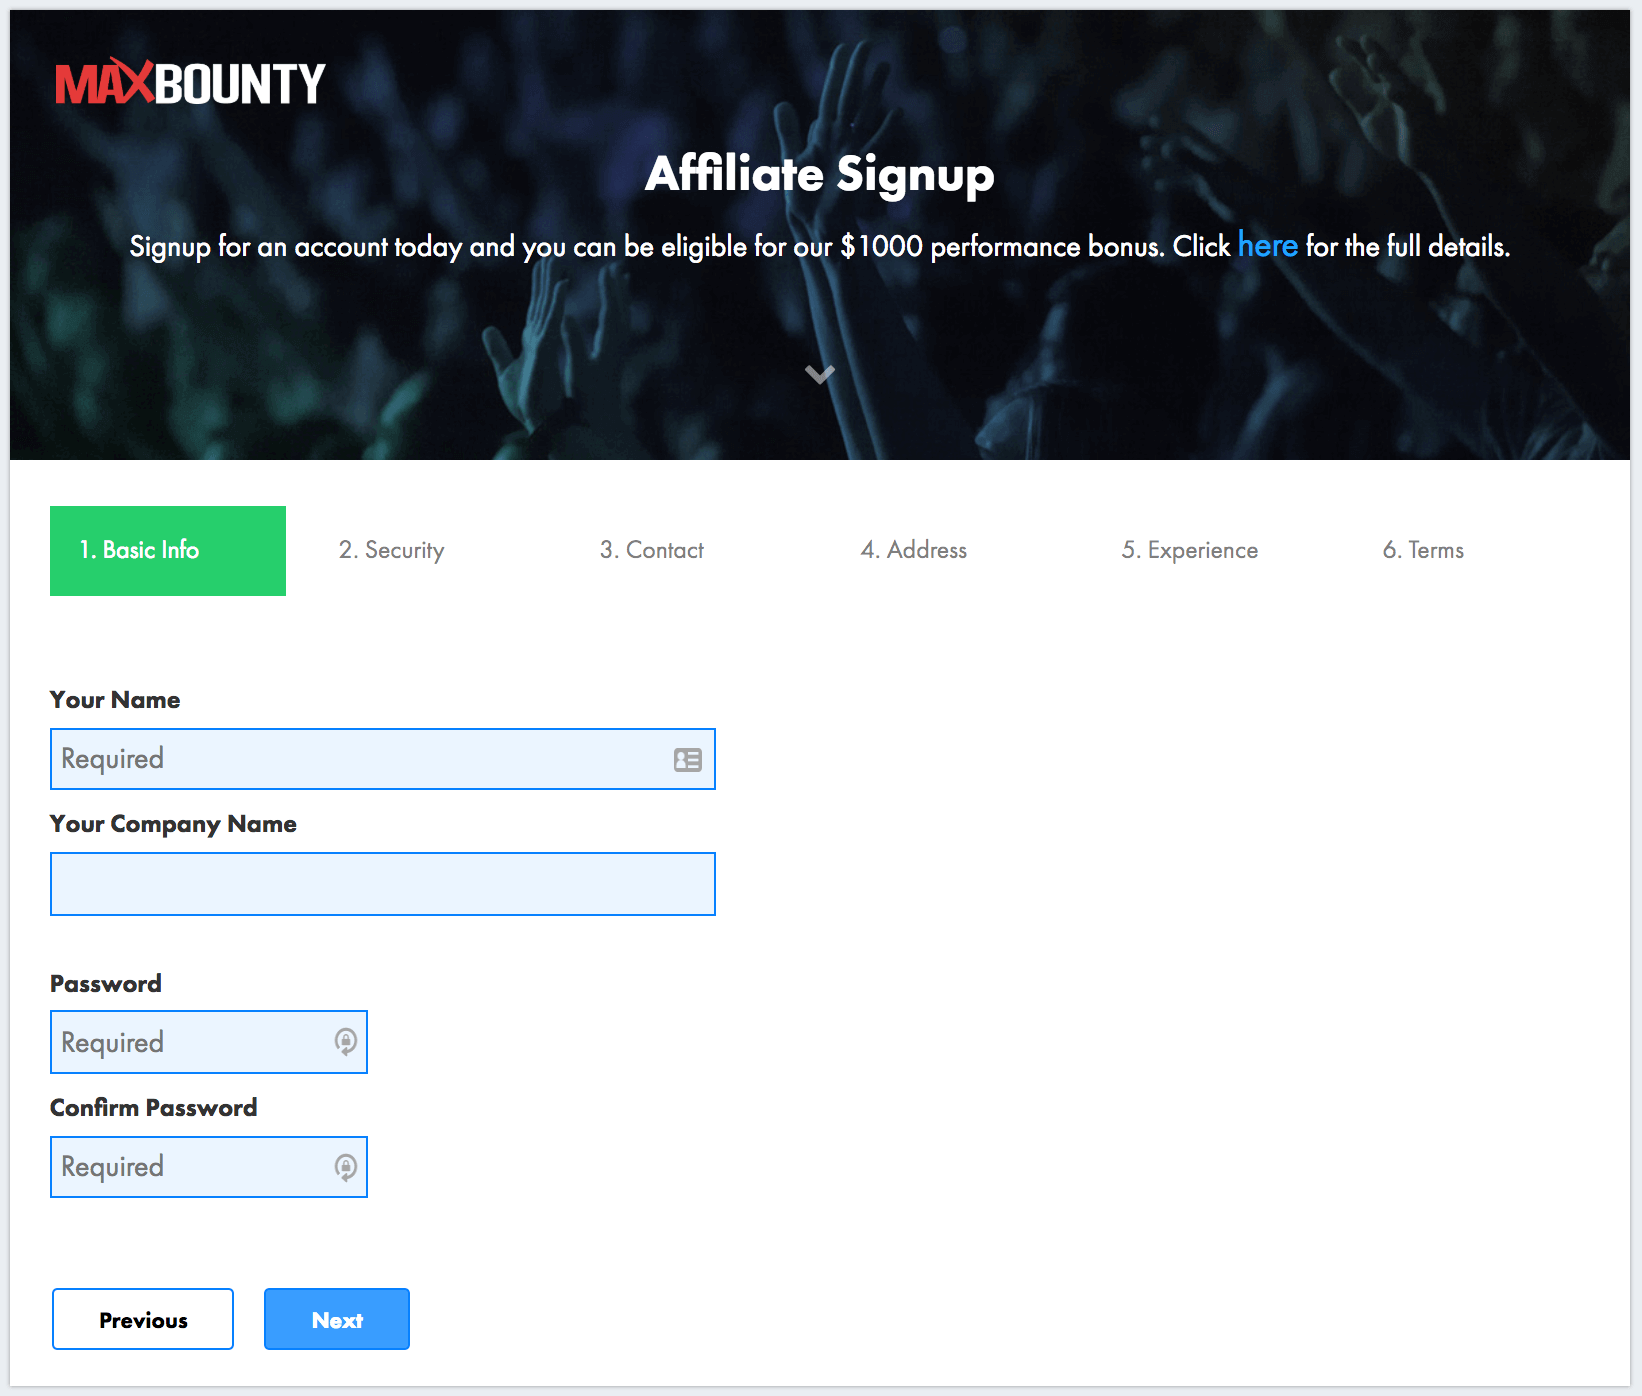 MaxBounty – Affiliate signup